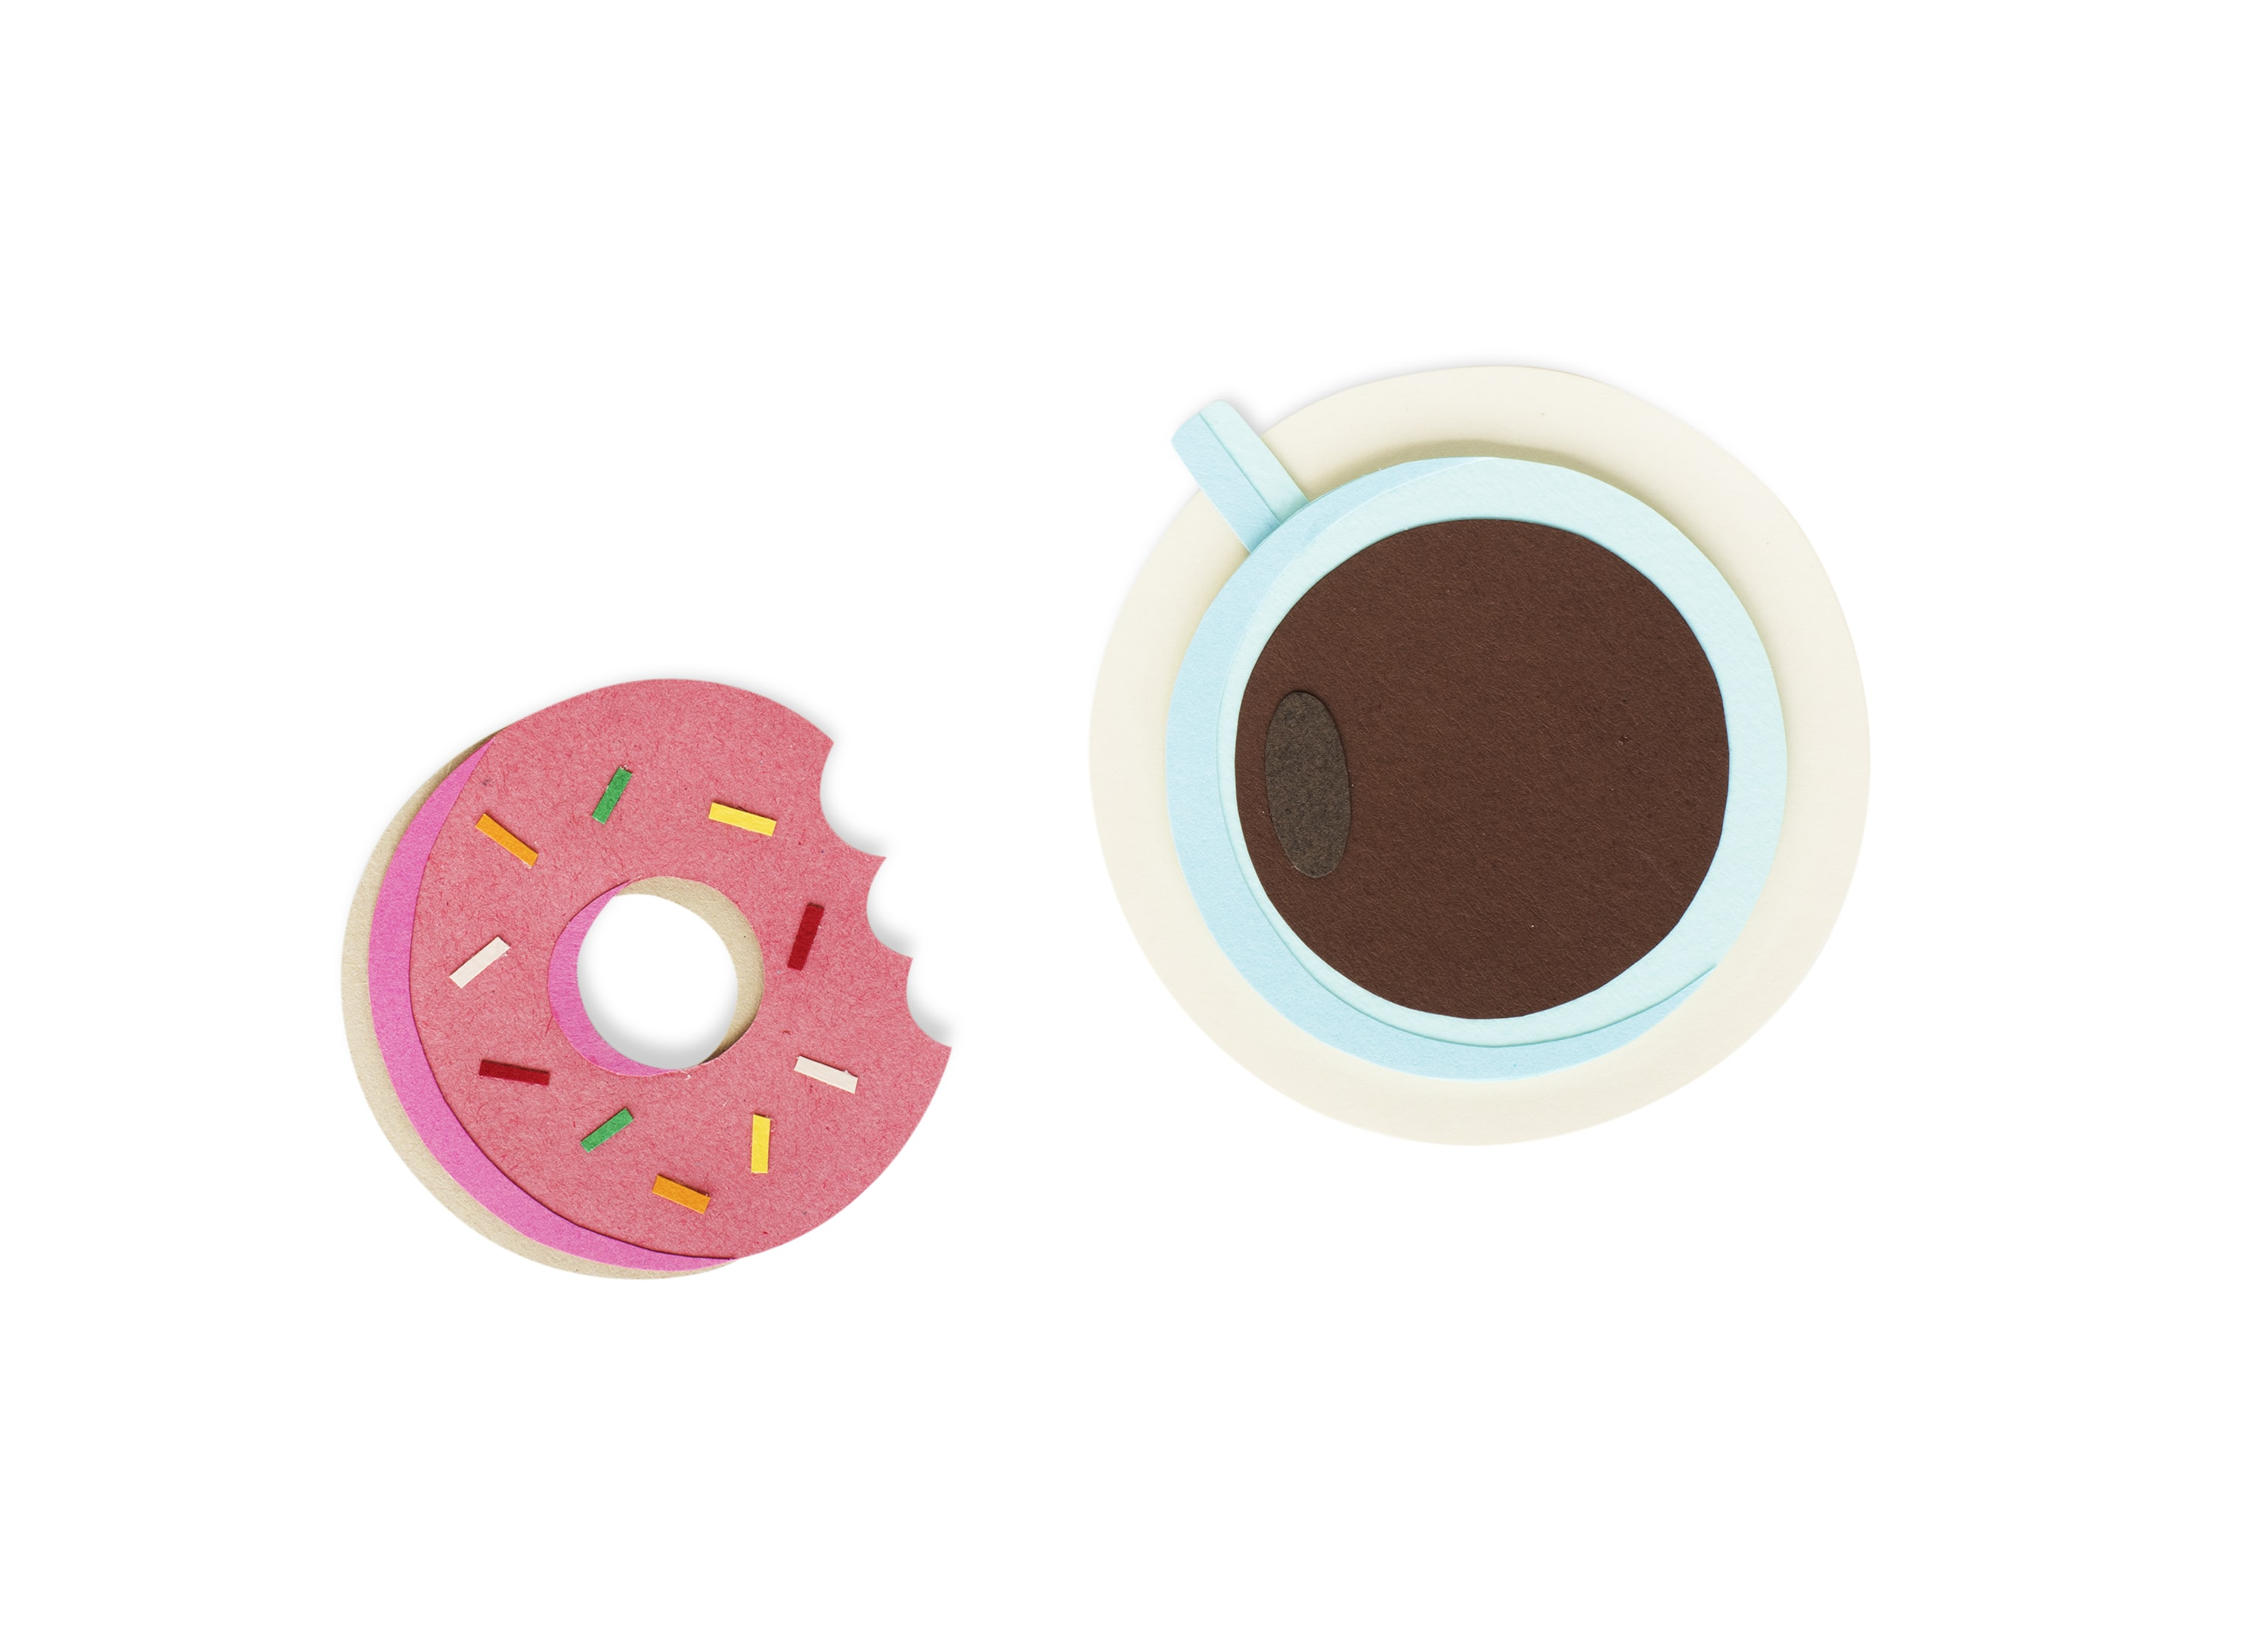 doughnut illustration